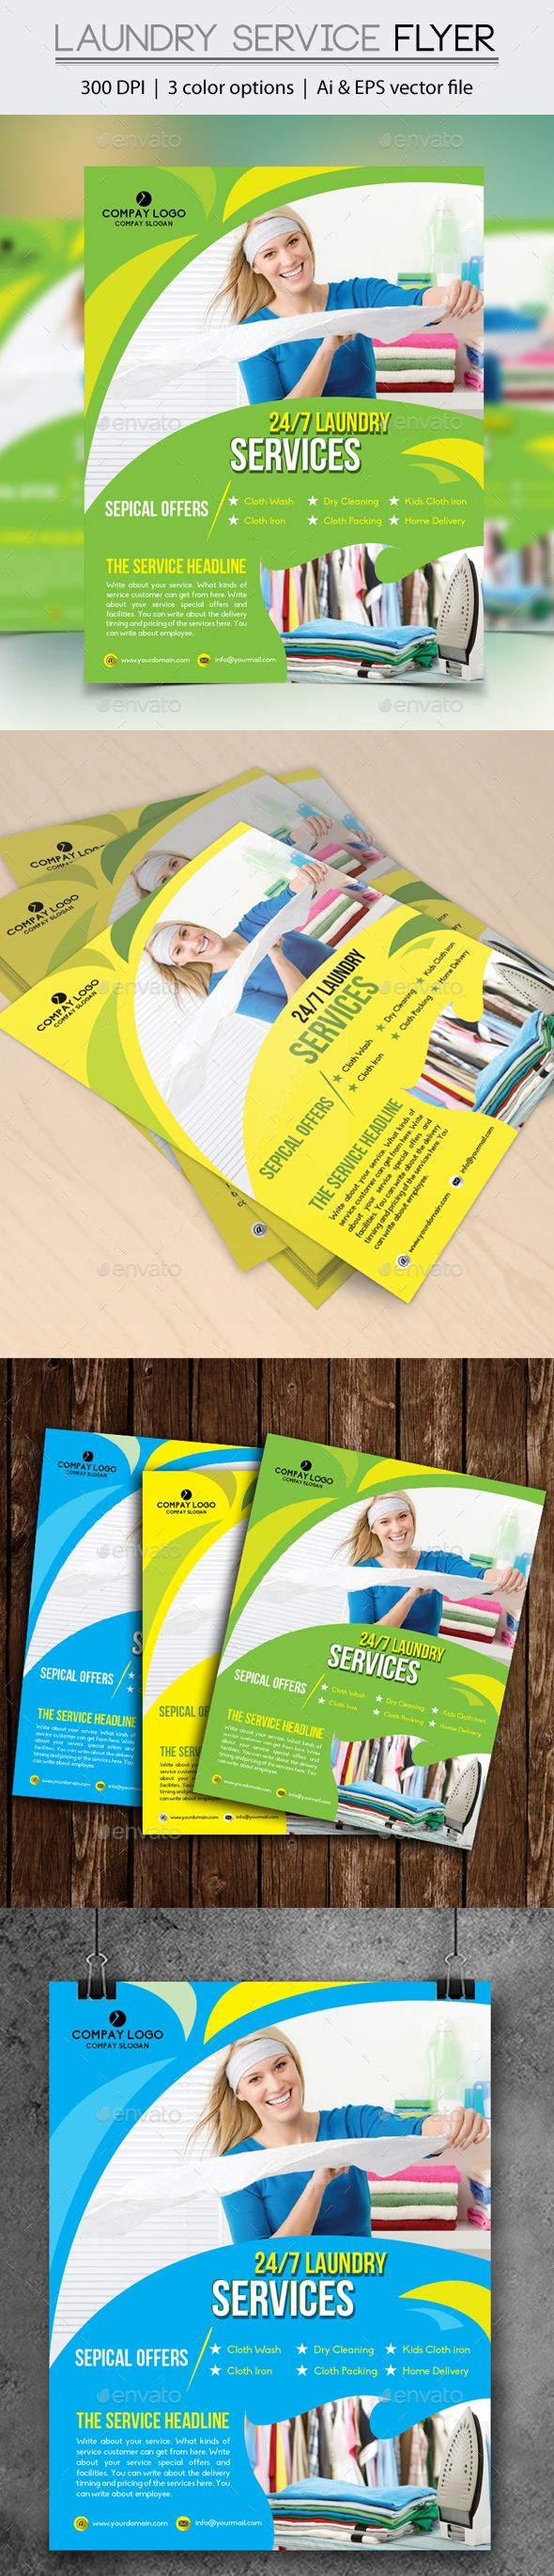 34 best laundry flyer images on pinterest creative letters and laundry service flyer pronofoot35fo Image collections